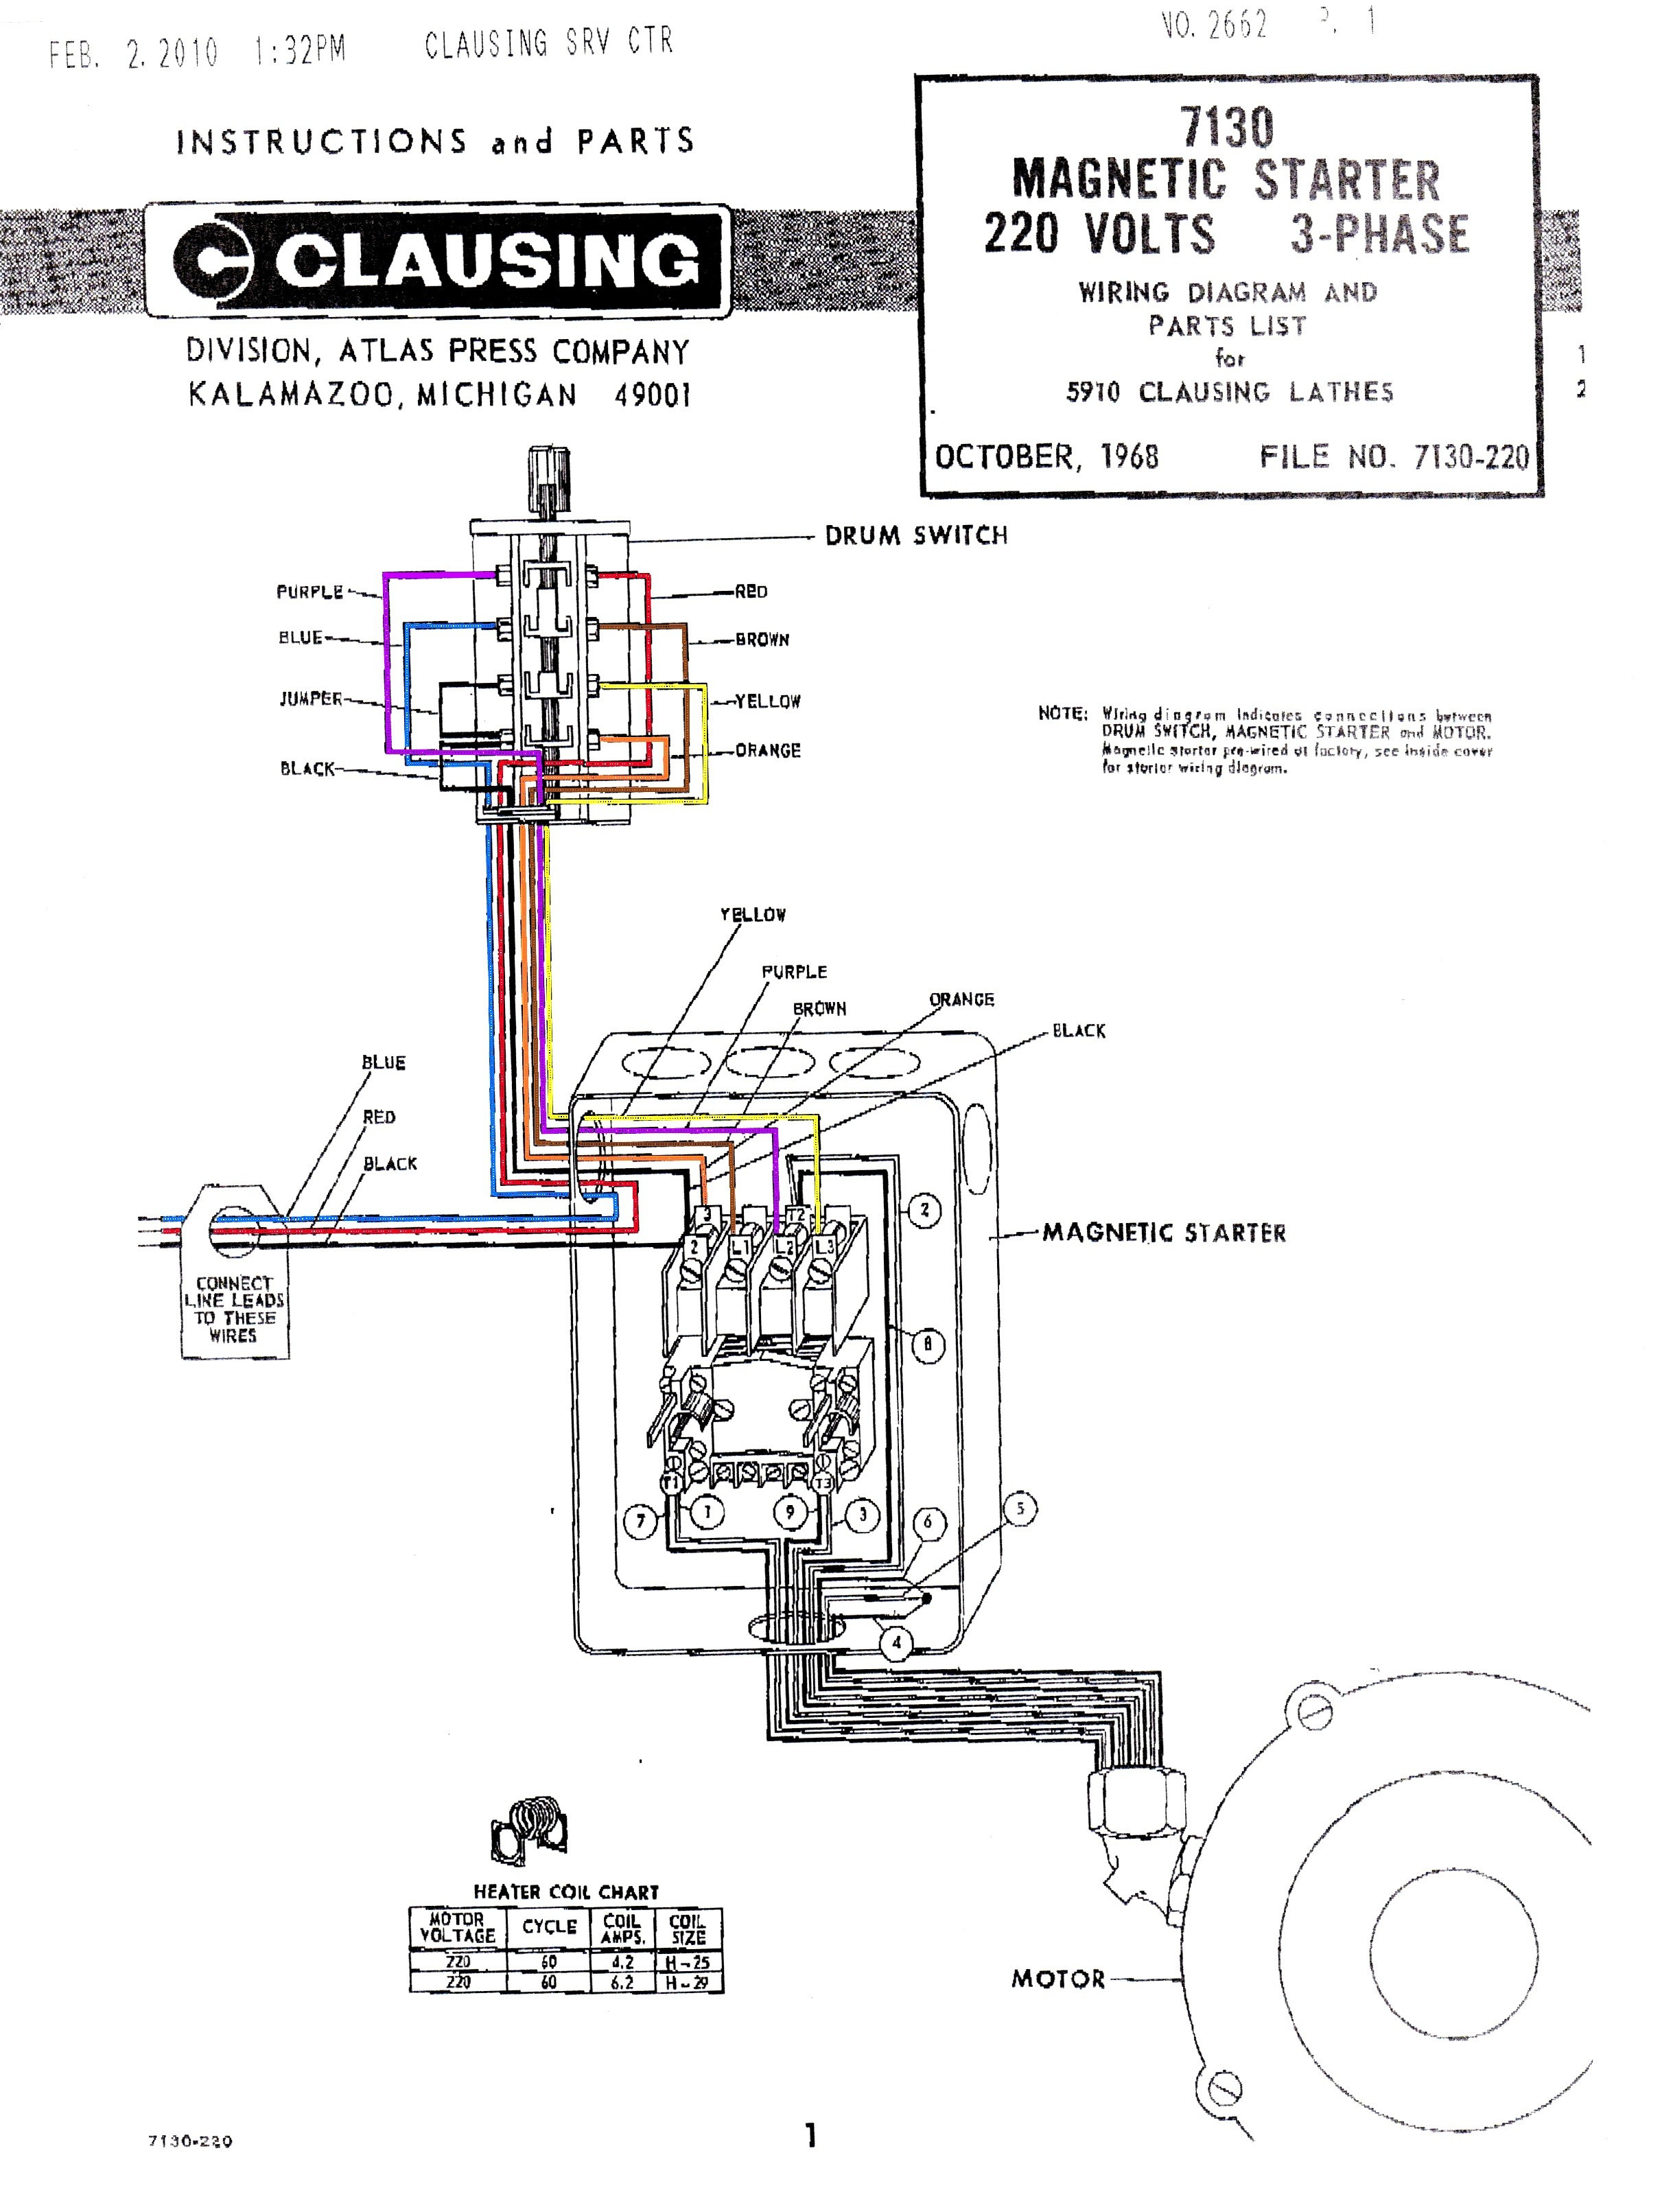 Wiring Diagram For 220 Motor | Wiring Diagram on circuit diagram, motor relay wiring, starter switch diagram, motor stator winding diagram, motor starter schematic, allen bradley motor starter diagram, 3 phase motor starter diagram, rexroth piston pump parts diagram, motor control diagram, motor star delta starter diagram, motor starter control wiring, electrical contactor diagram, magnetic switch diagram, motor starter contactor, motor control contactor, single phase reversing contactor diagram, mechanically held lighting contactor diagram, motor schematic diagrams, 3 phase power diagram, ac contactor diagram,